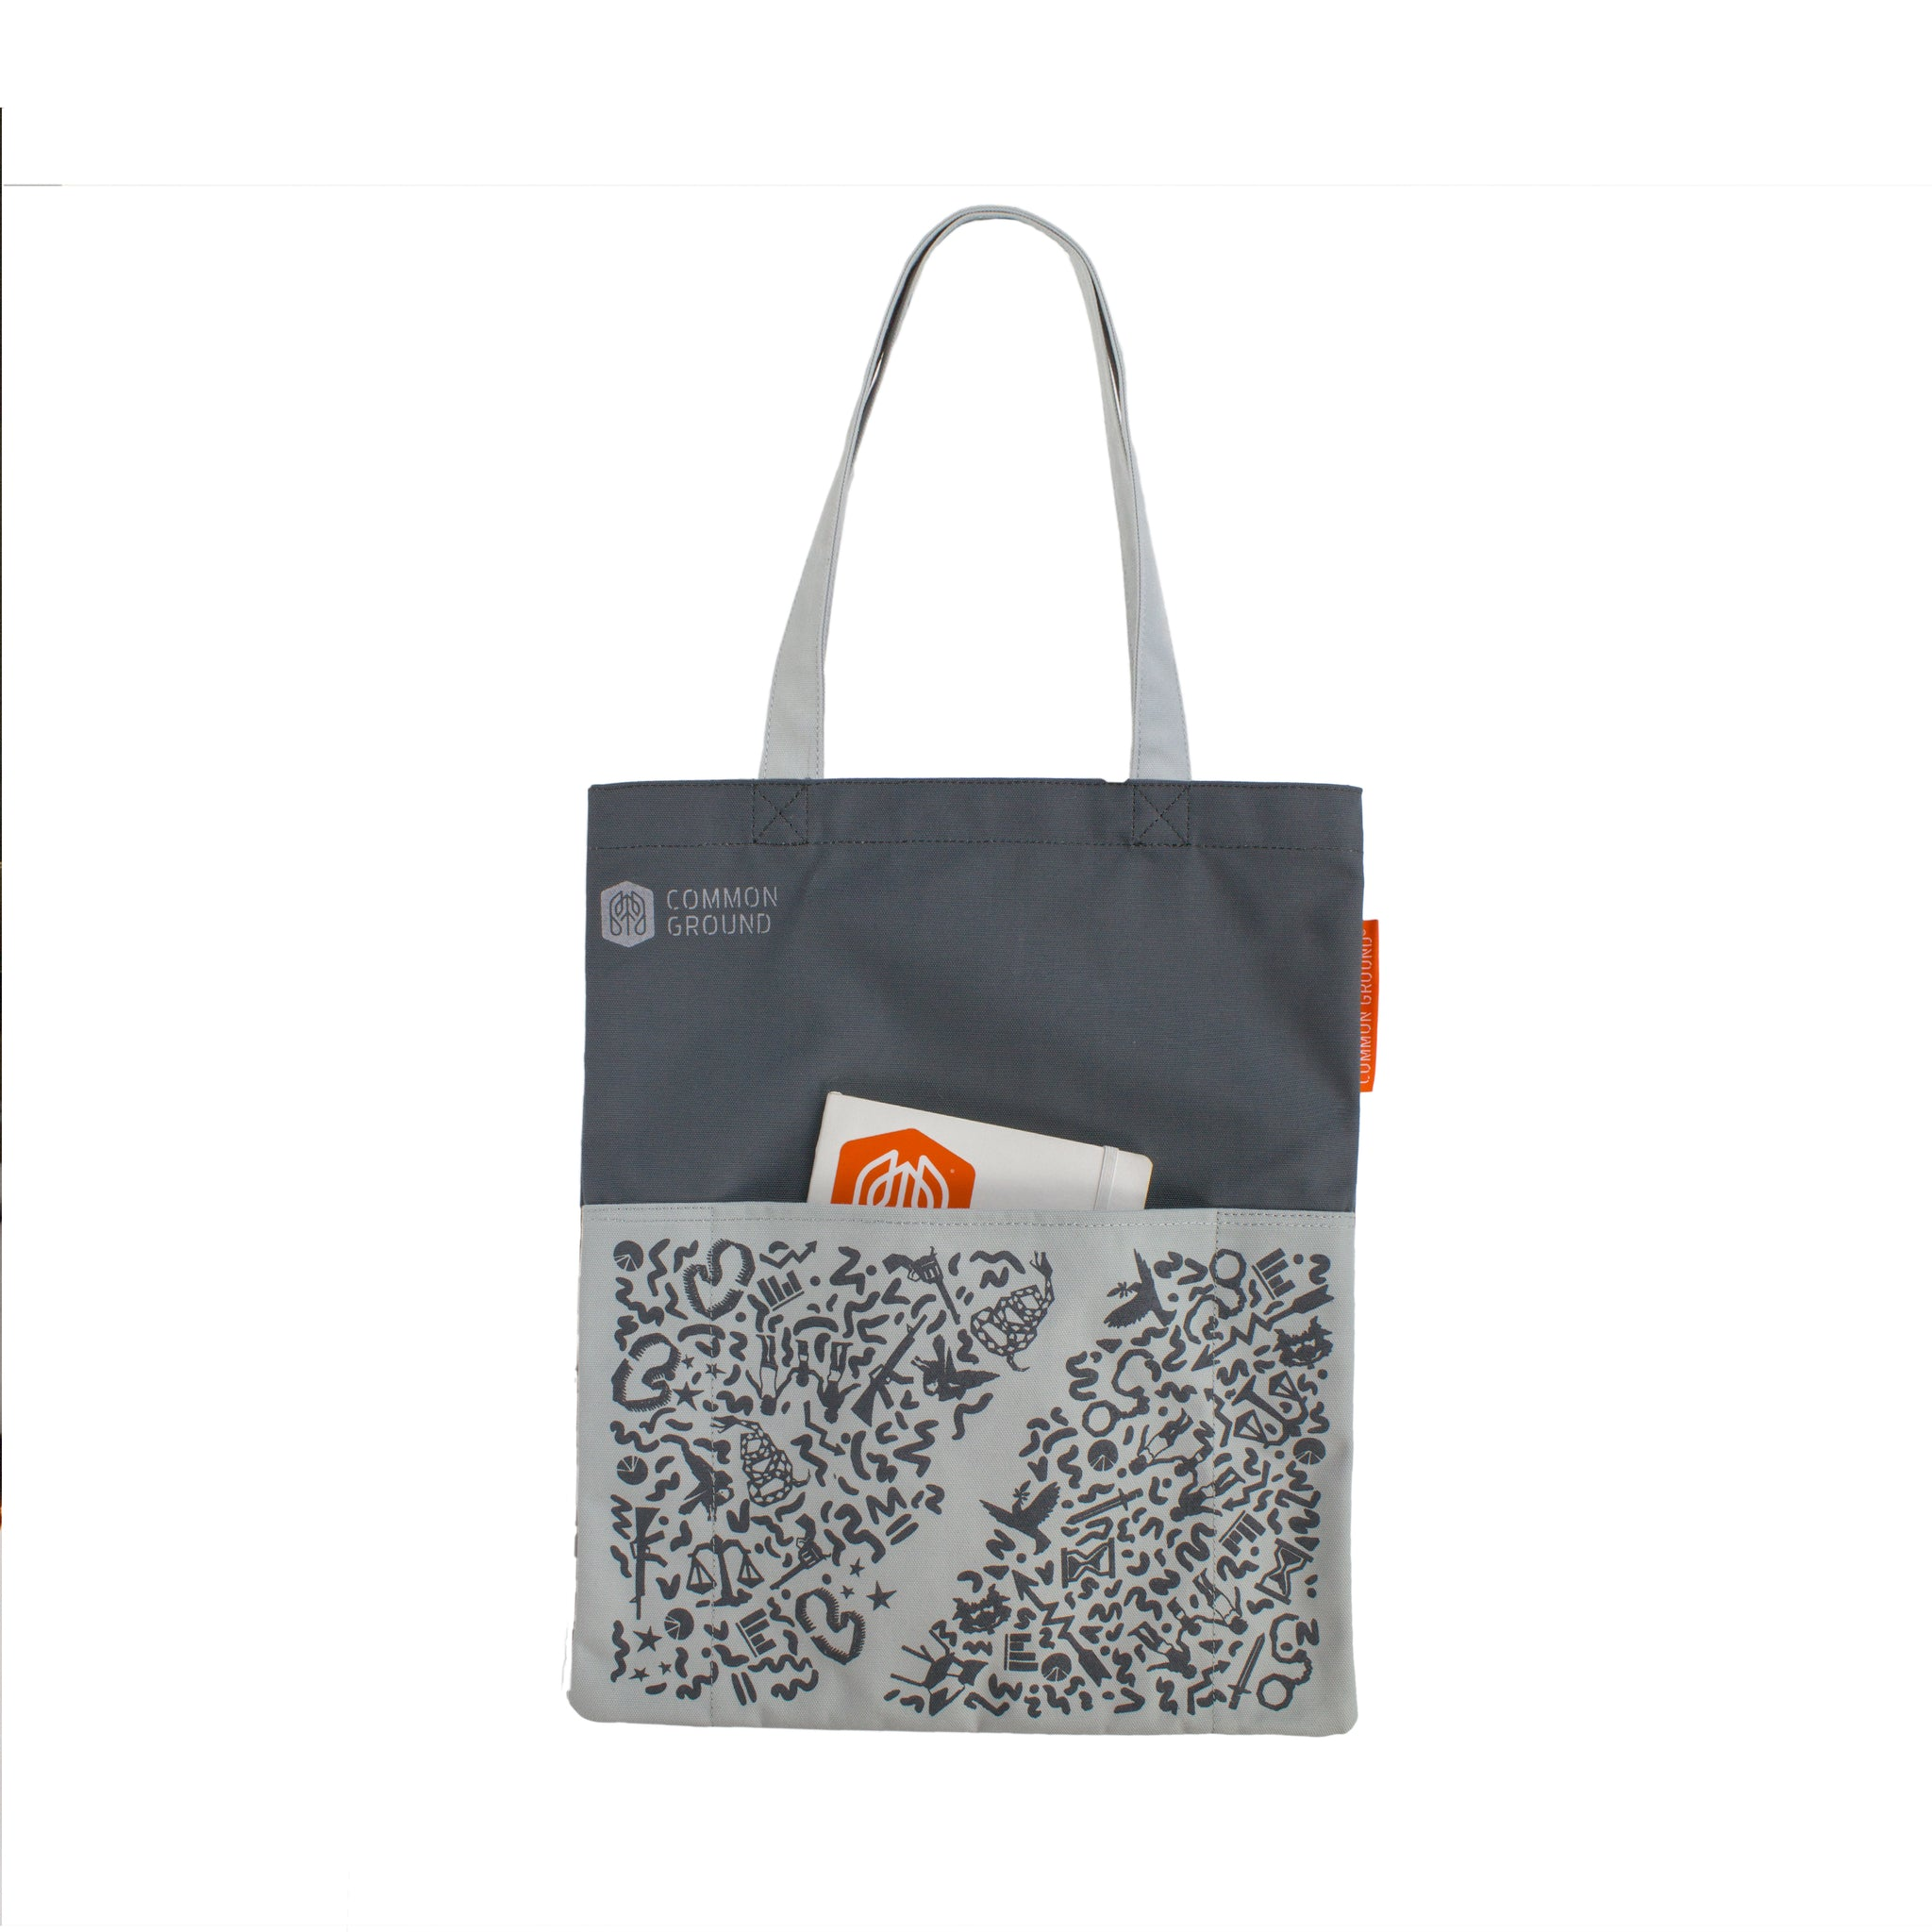 Castle_Rock - Common Ground Reading Tote Front External Pocket View